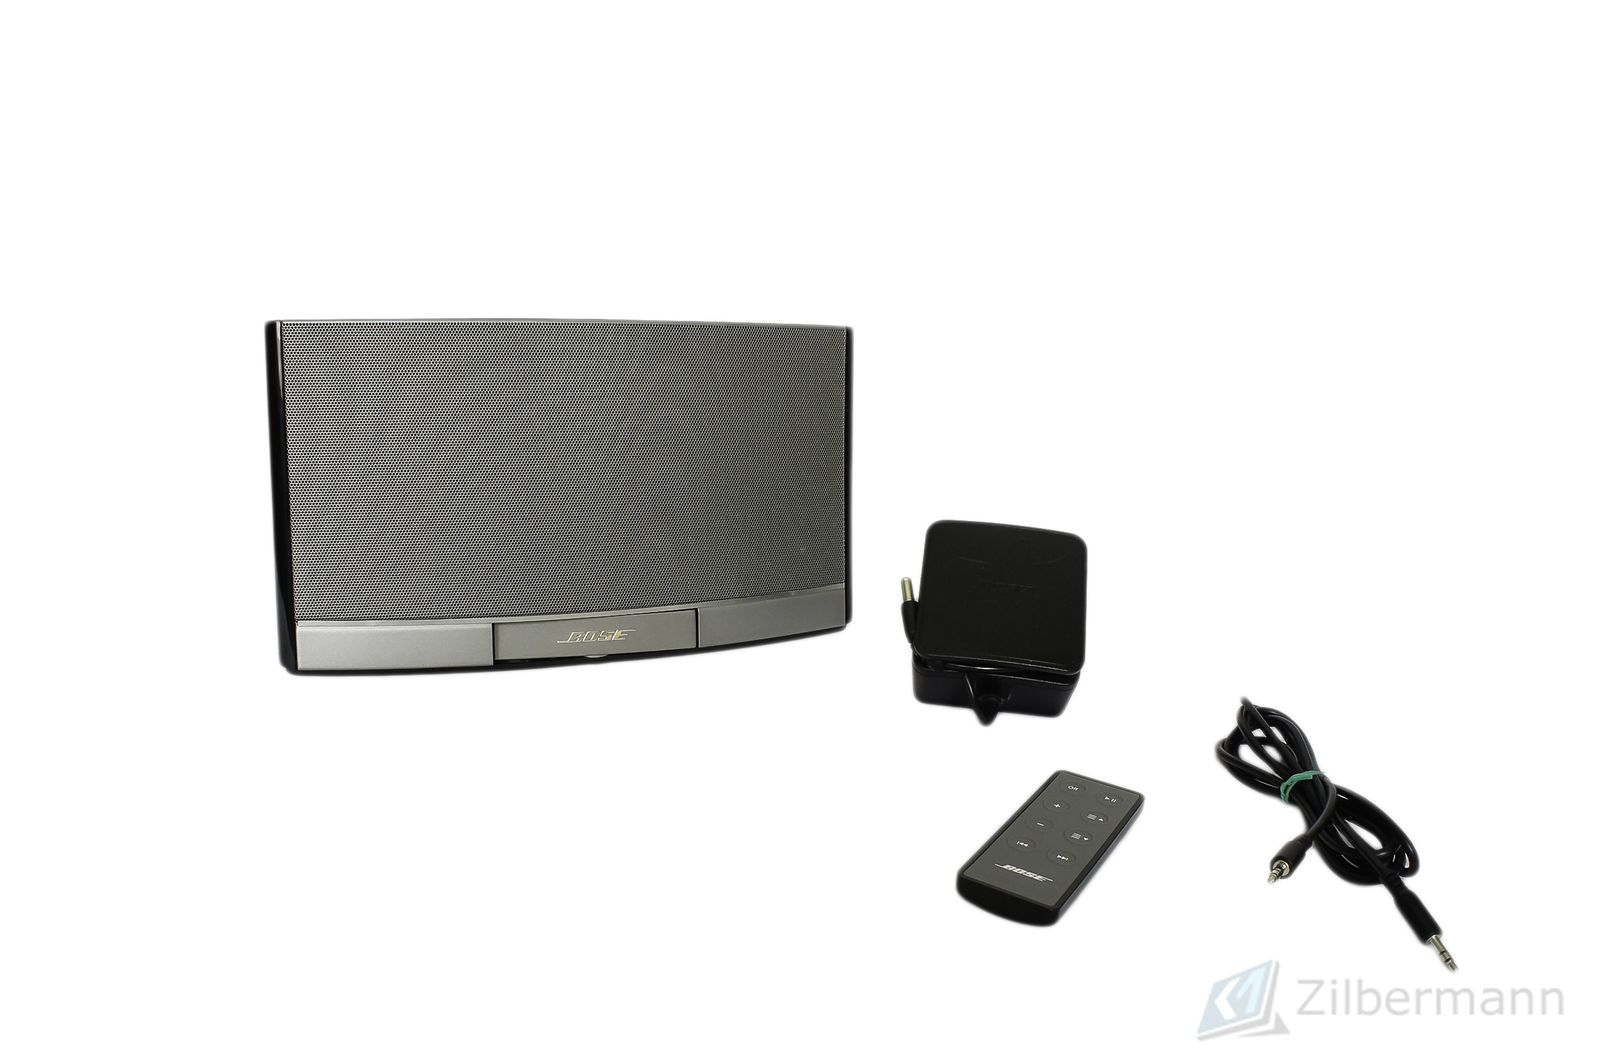 Bose_SoundDock_Portable_Digital_Music_System_02